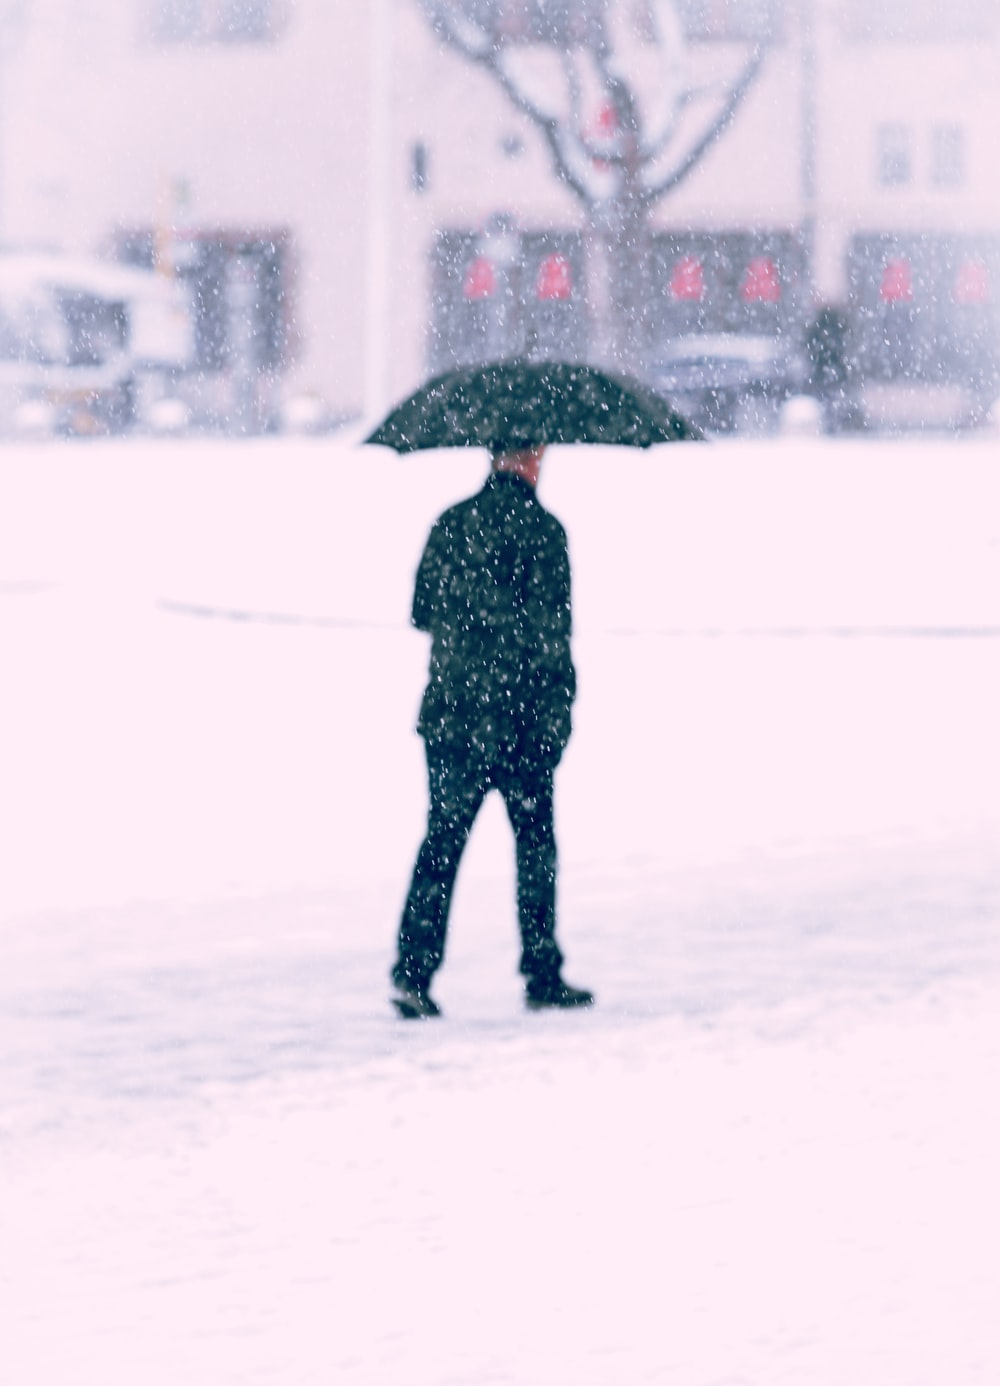 person in black jacket holding umbrella walking on snow covered ground during daytime